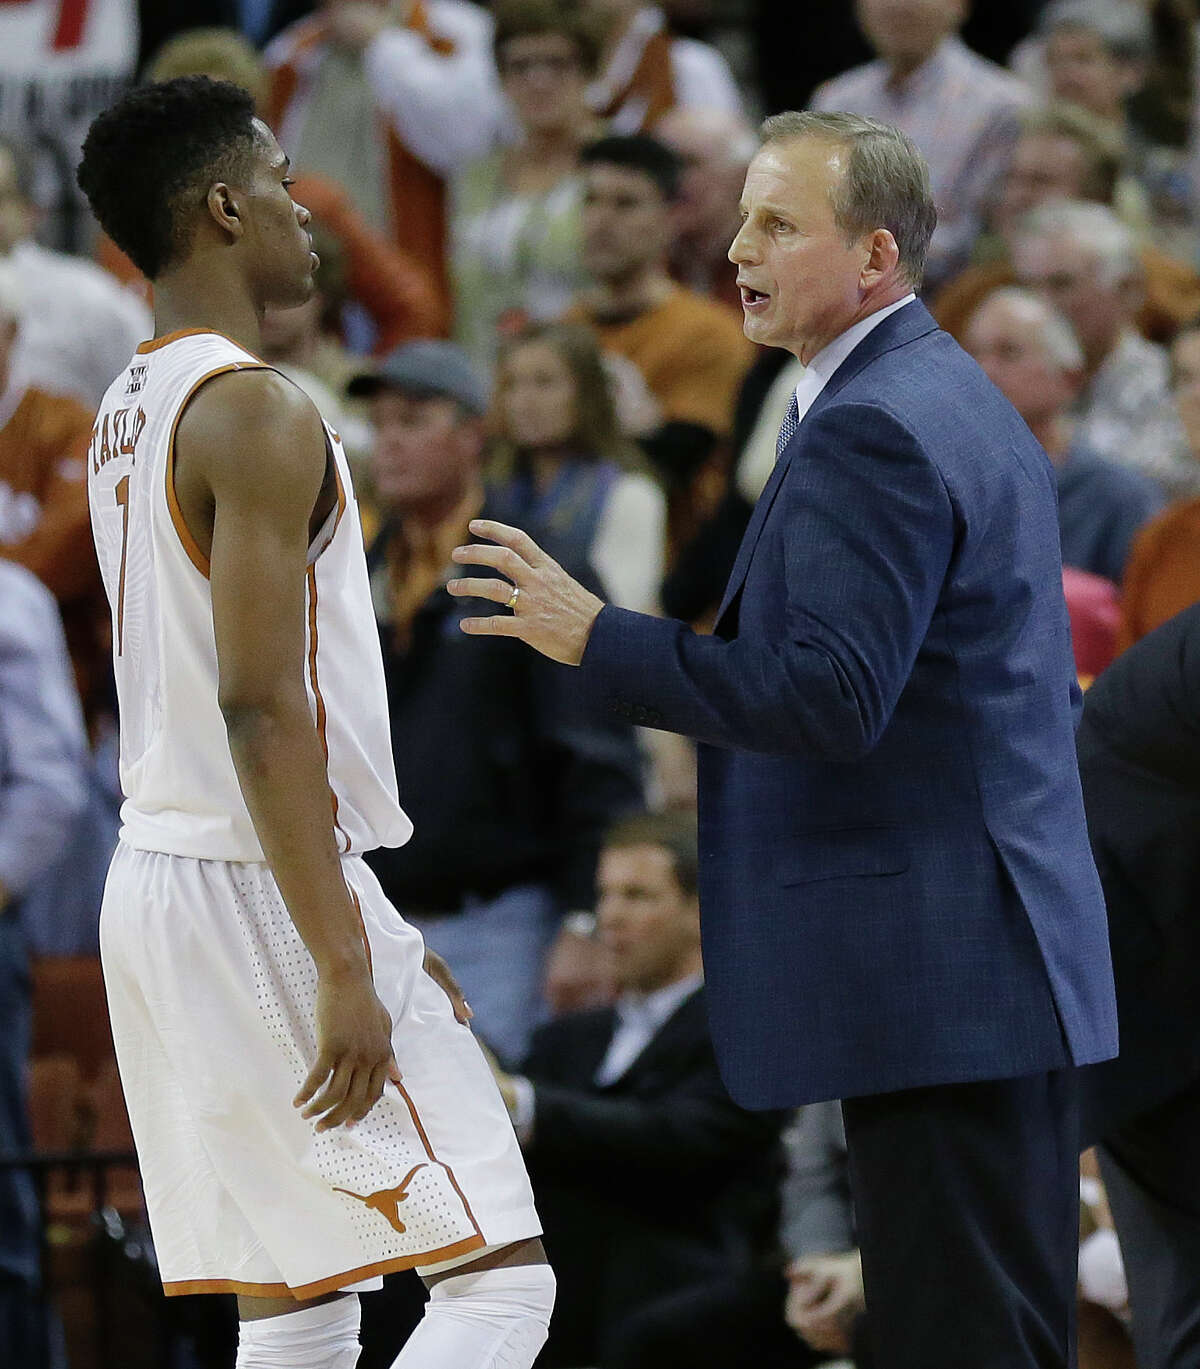 Texas coach Rick Barnes, right, talks with Isaiah Taylor (1) during the second half of a NCAA college basketball game against Kansas State, Tuesday, Jan. 21, 2014, in Austin, Texas. Texas won 67-64. (AP Photo/Eric Gay)